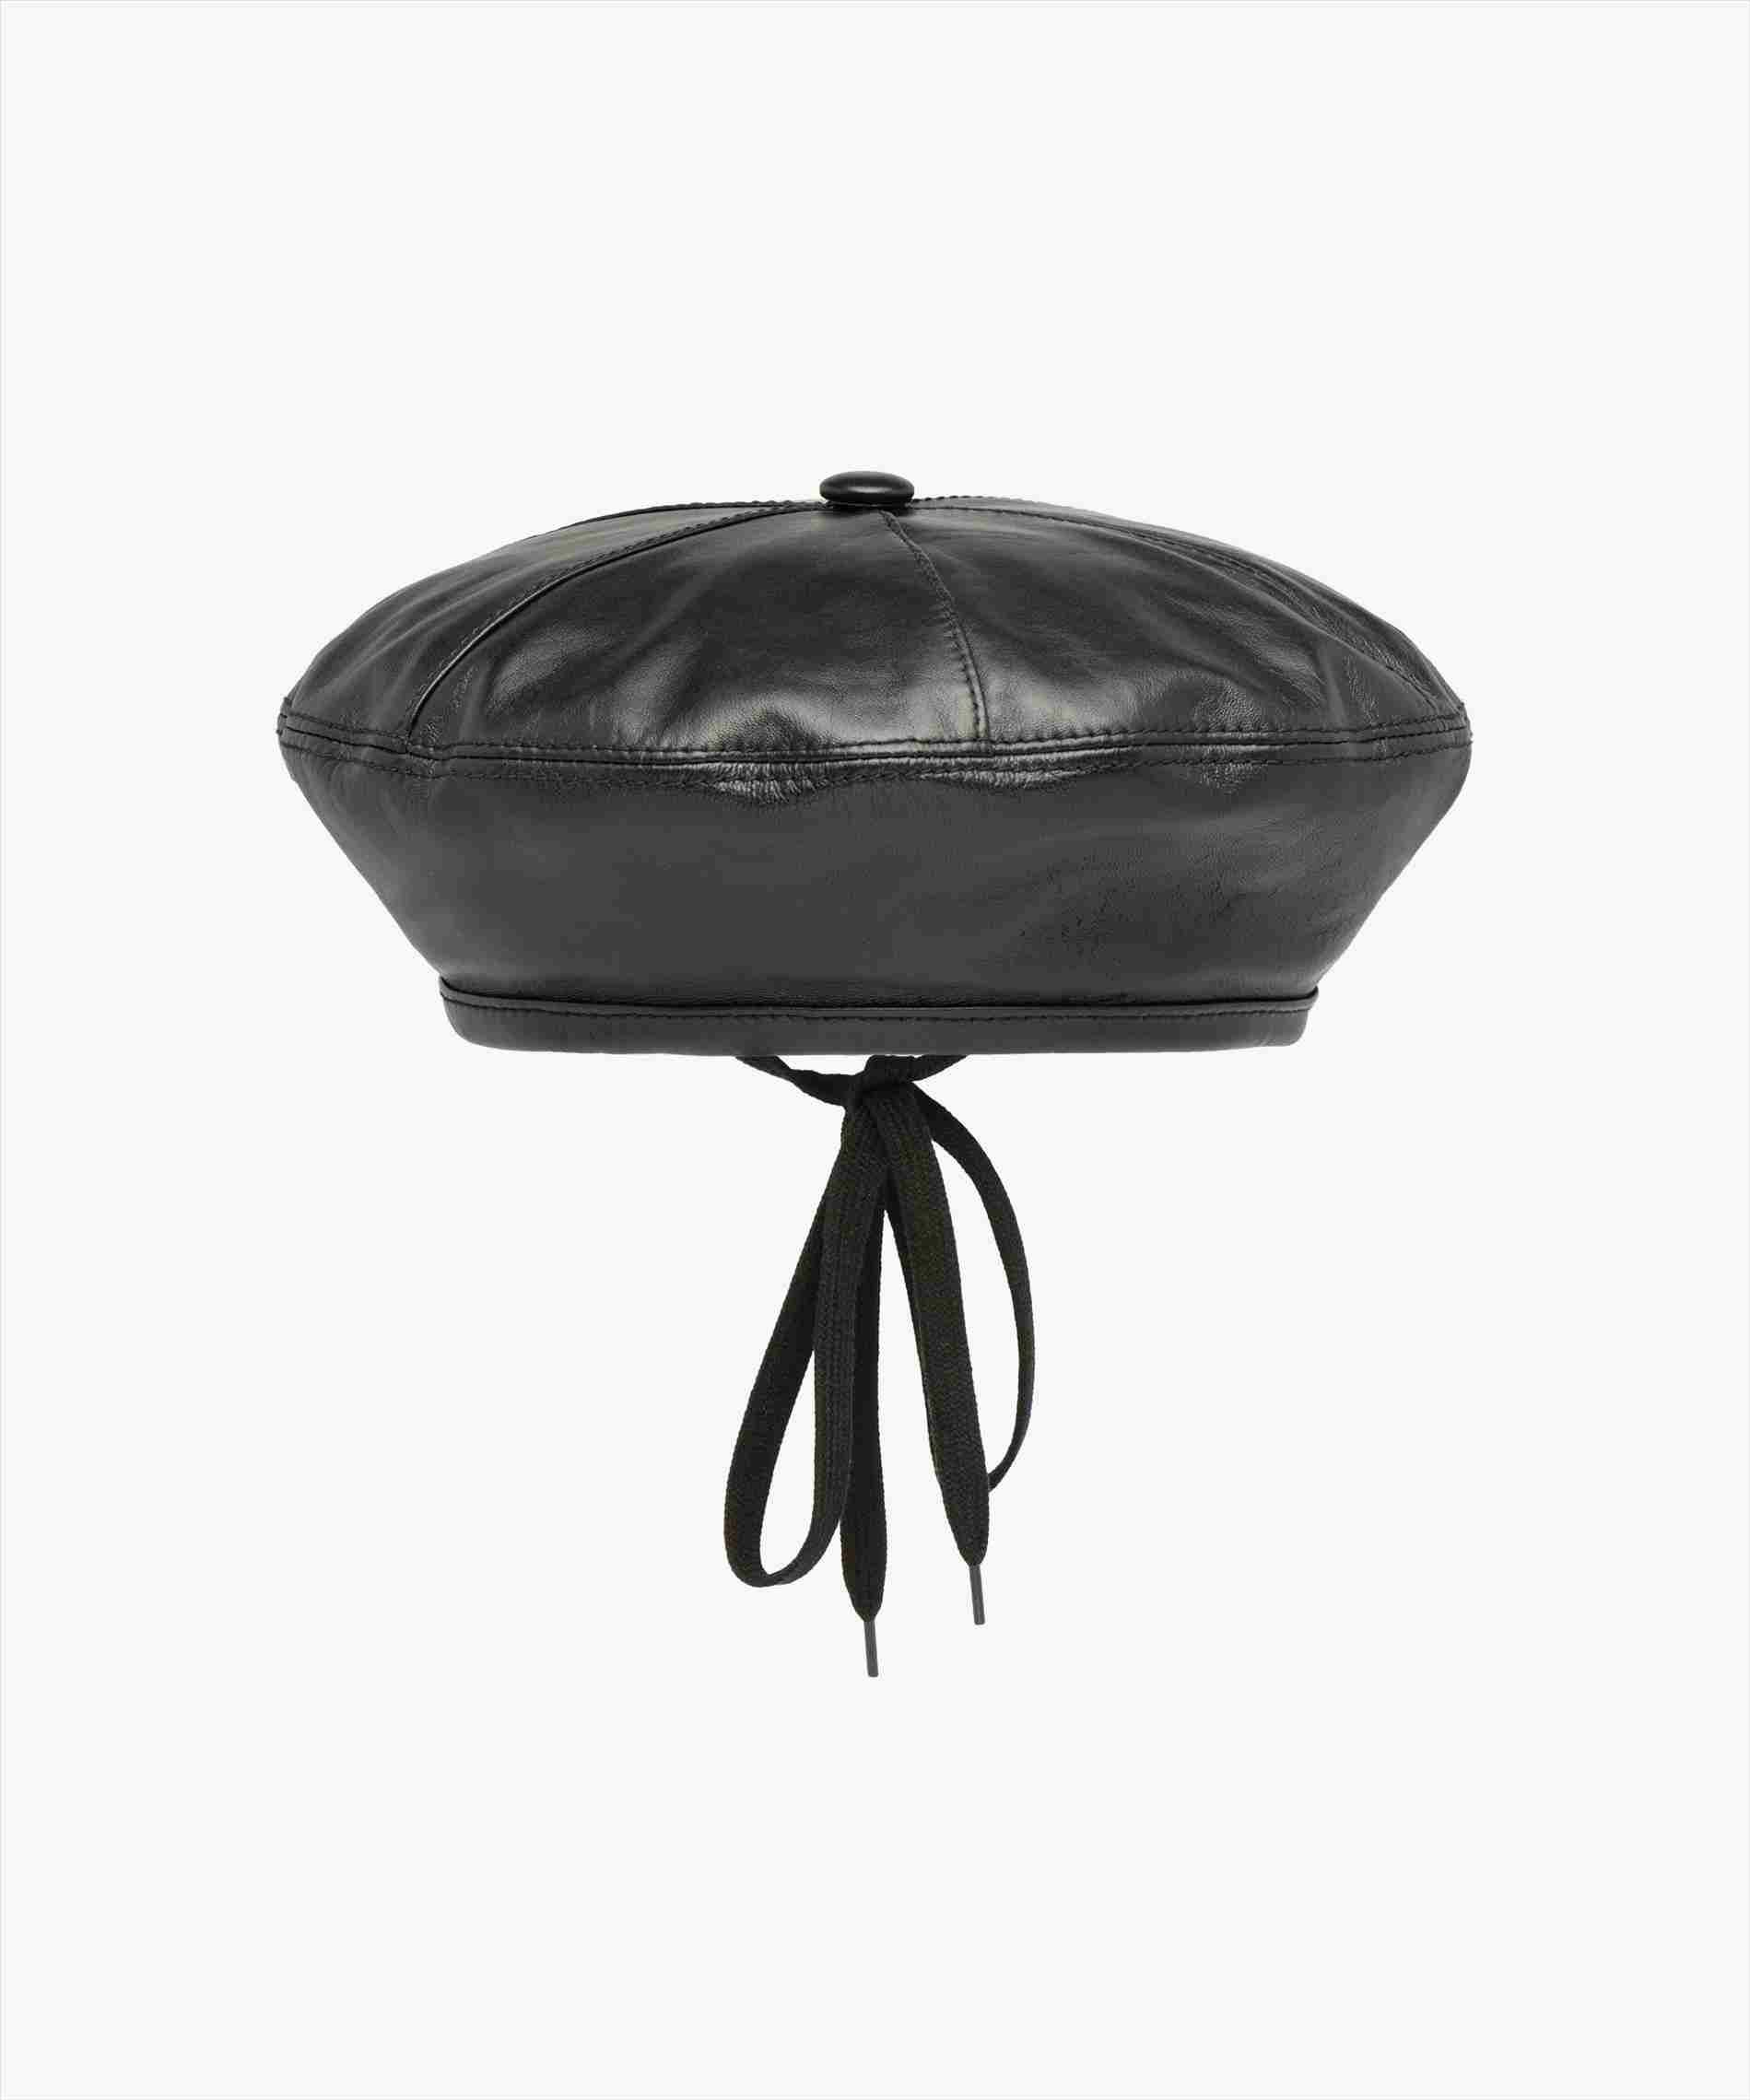 91155d6efb1 Black Beret Hat For Sale - yves saint laurent rive gauche black beret with knit  ball for sale 4. you may purchase up to 4 identical products per order. ...